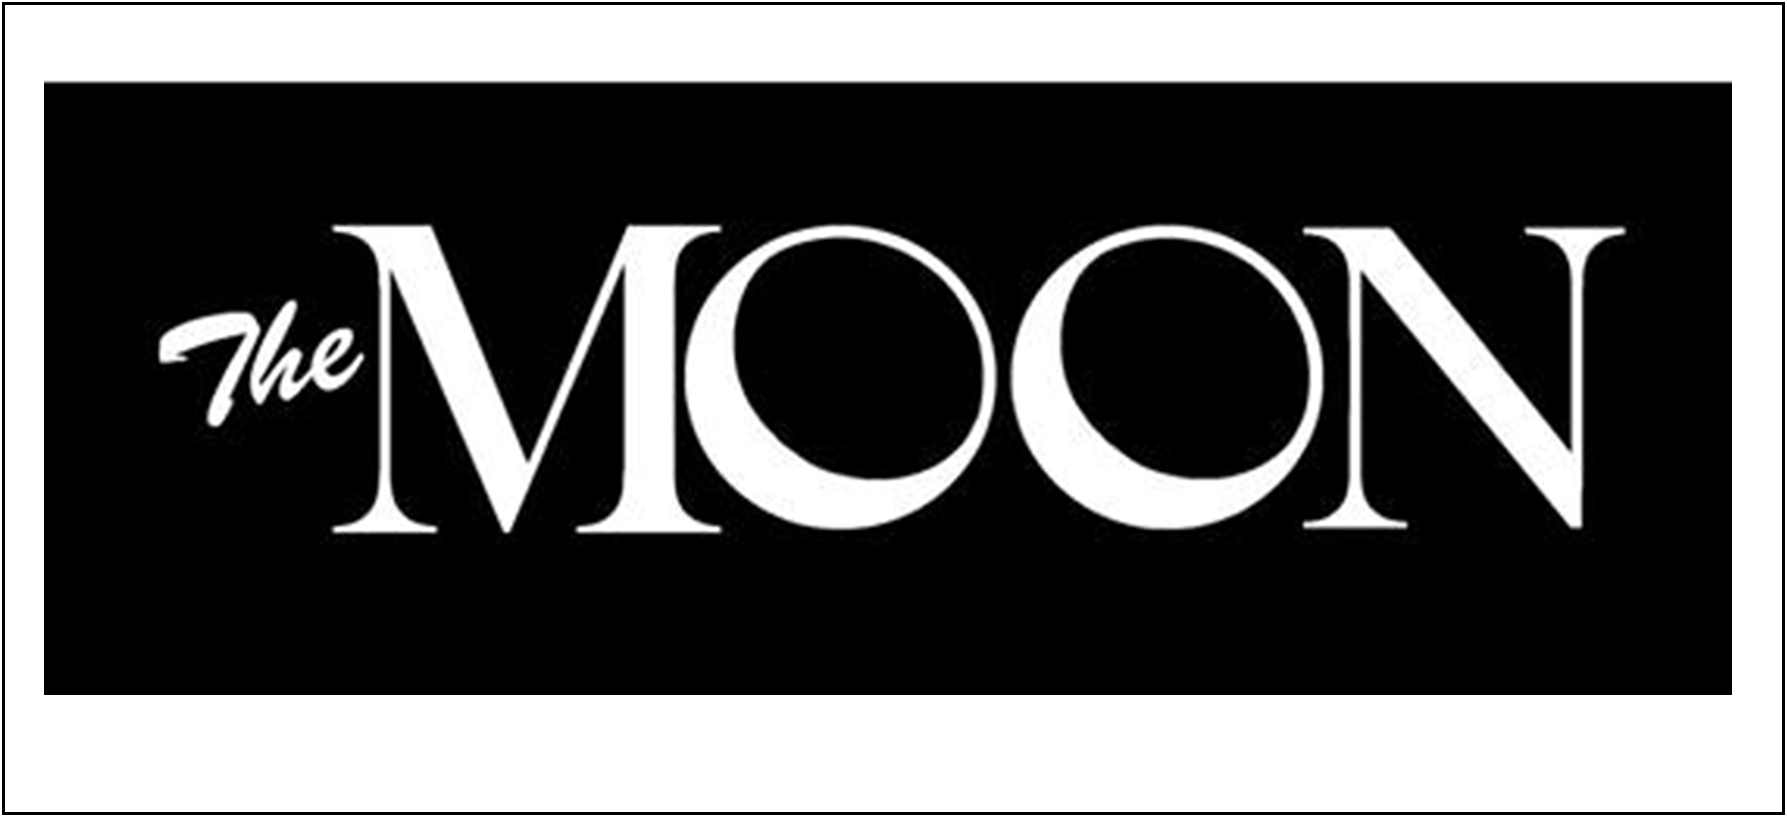 The Moon logo